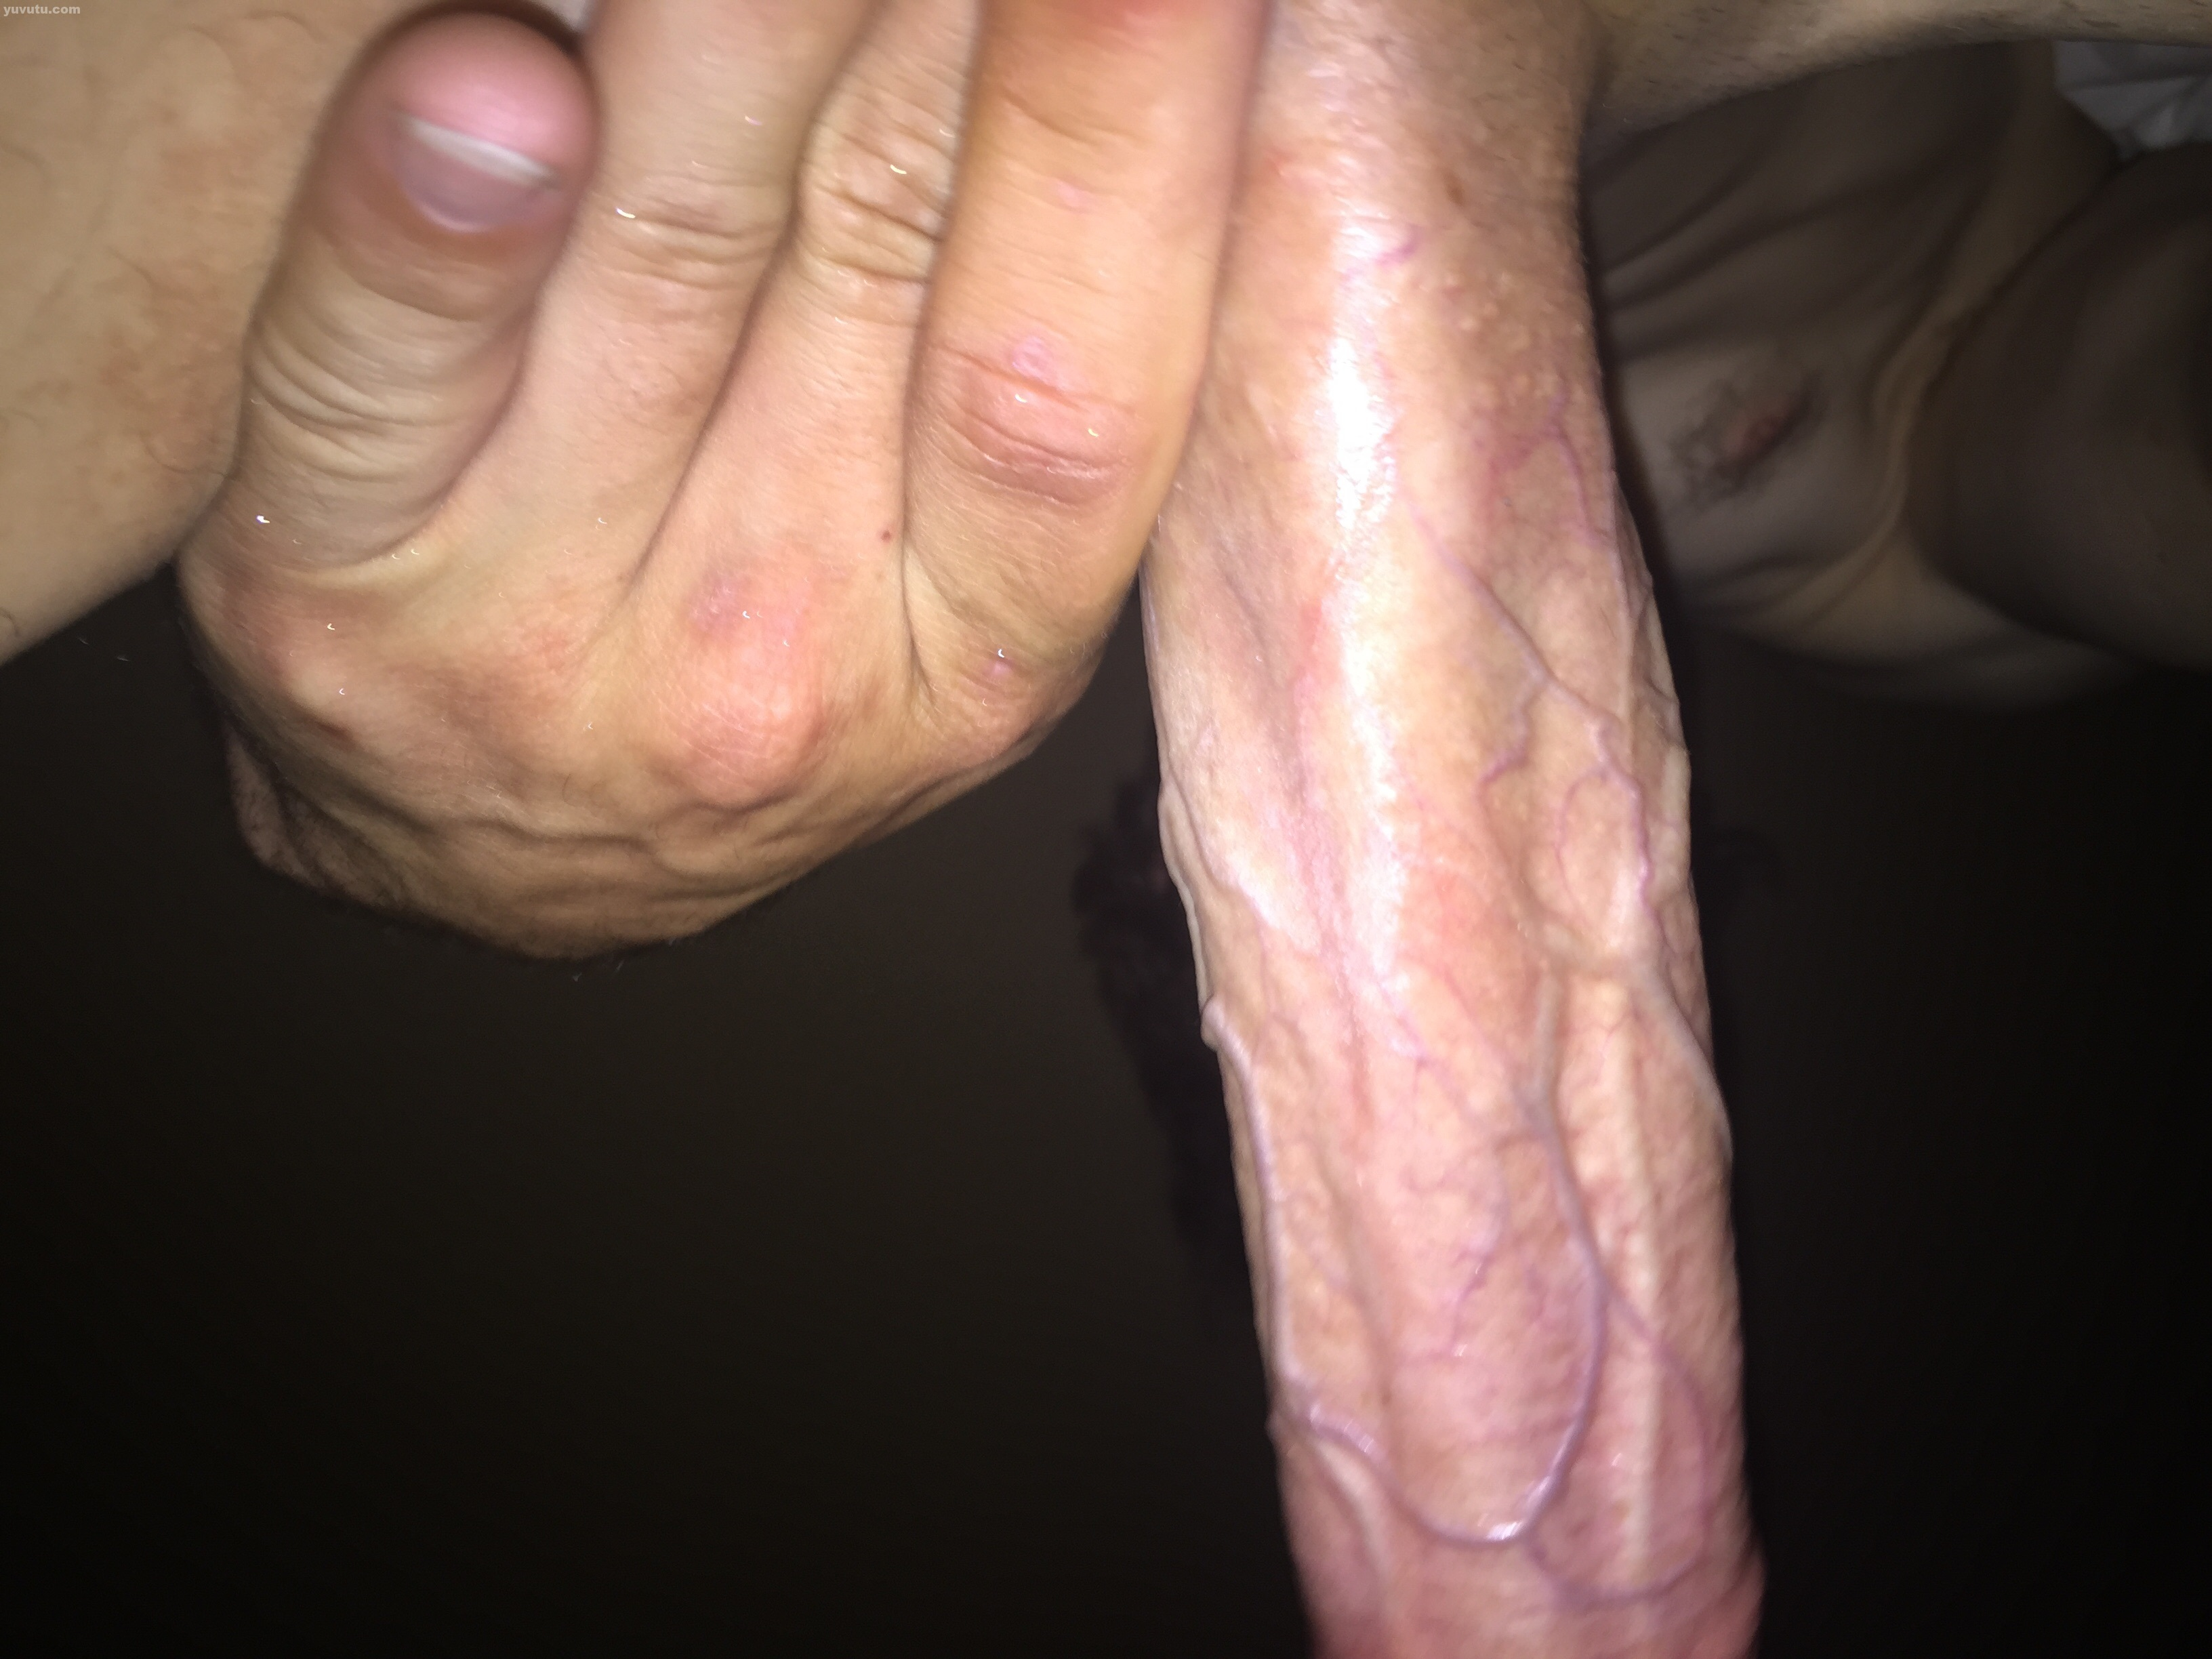 Big white uncut cock hard